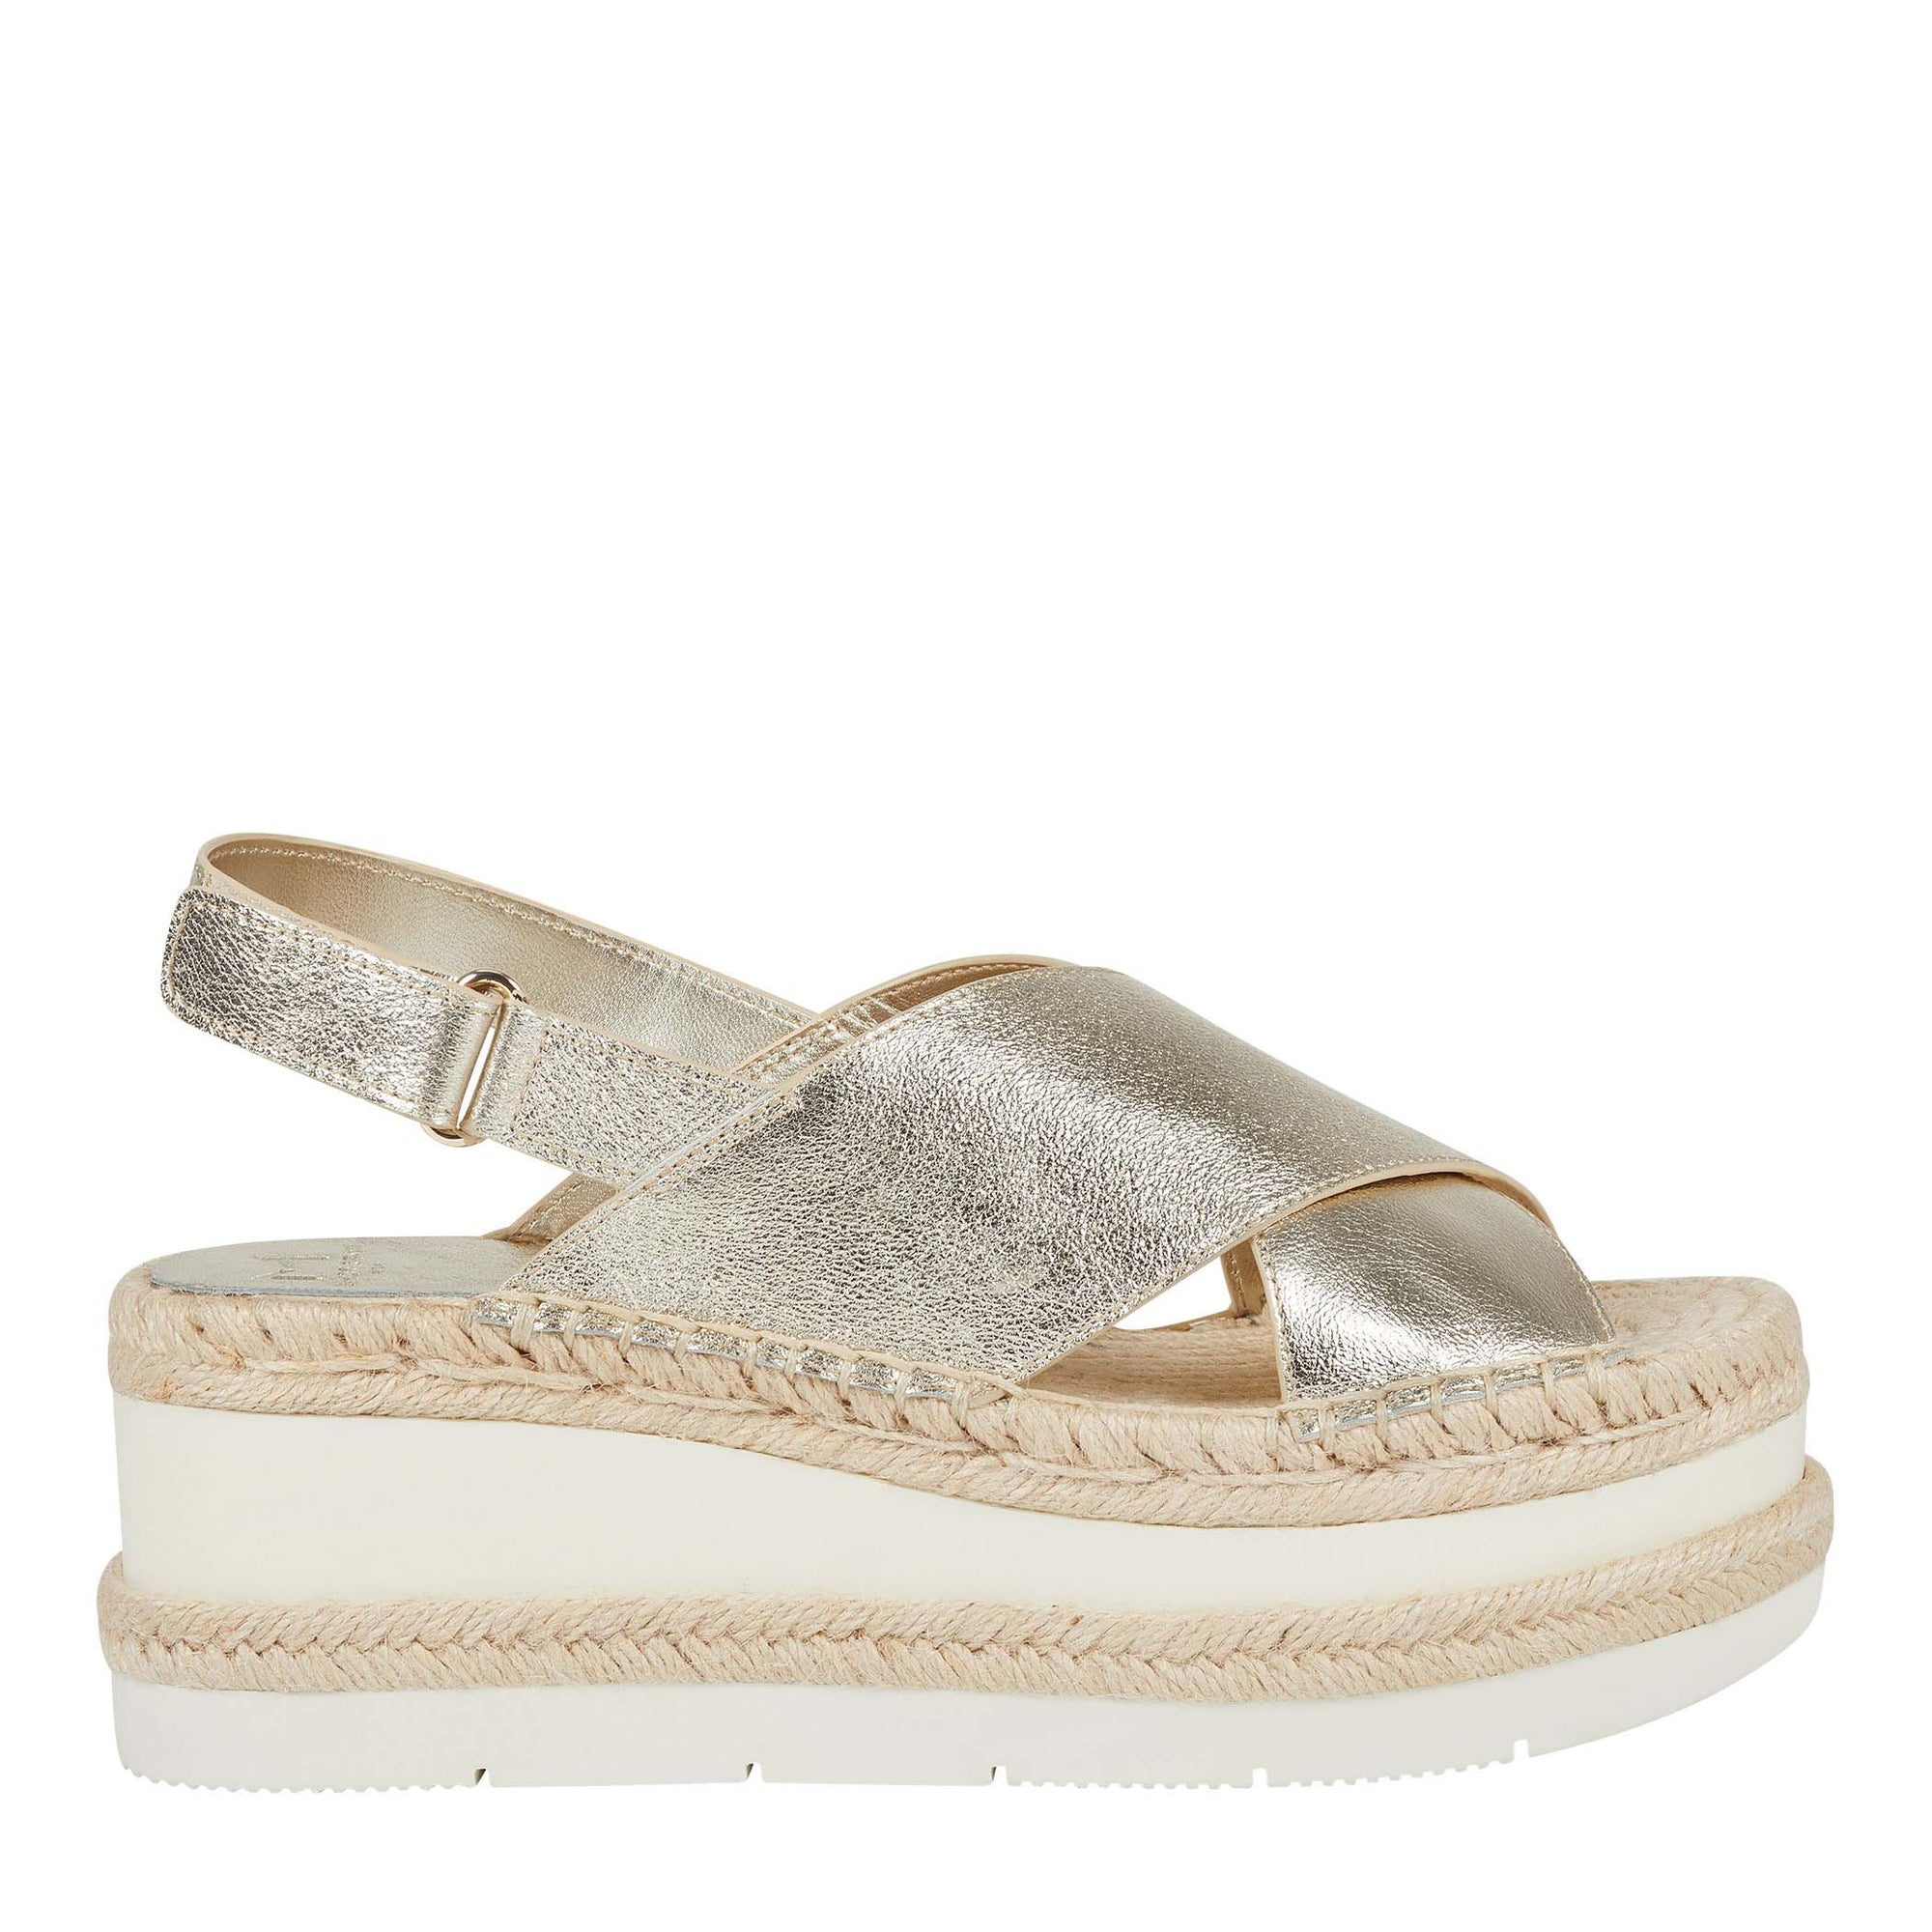 Gandy Espadrille Wedge Sandal